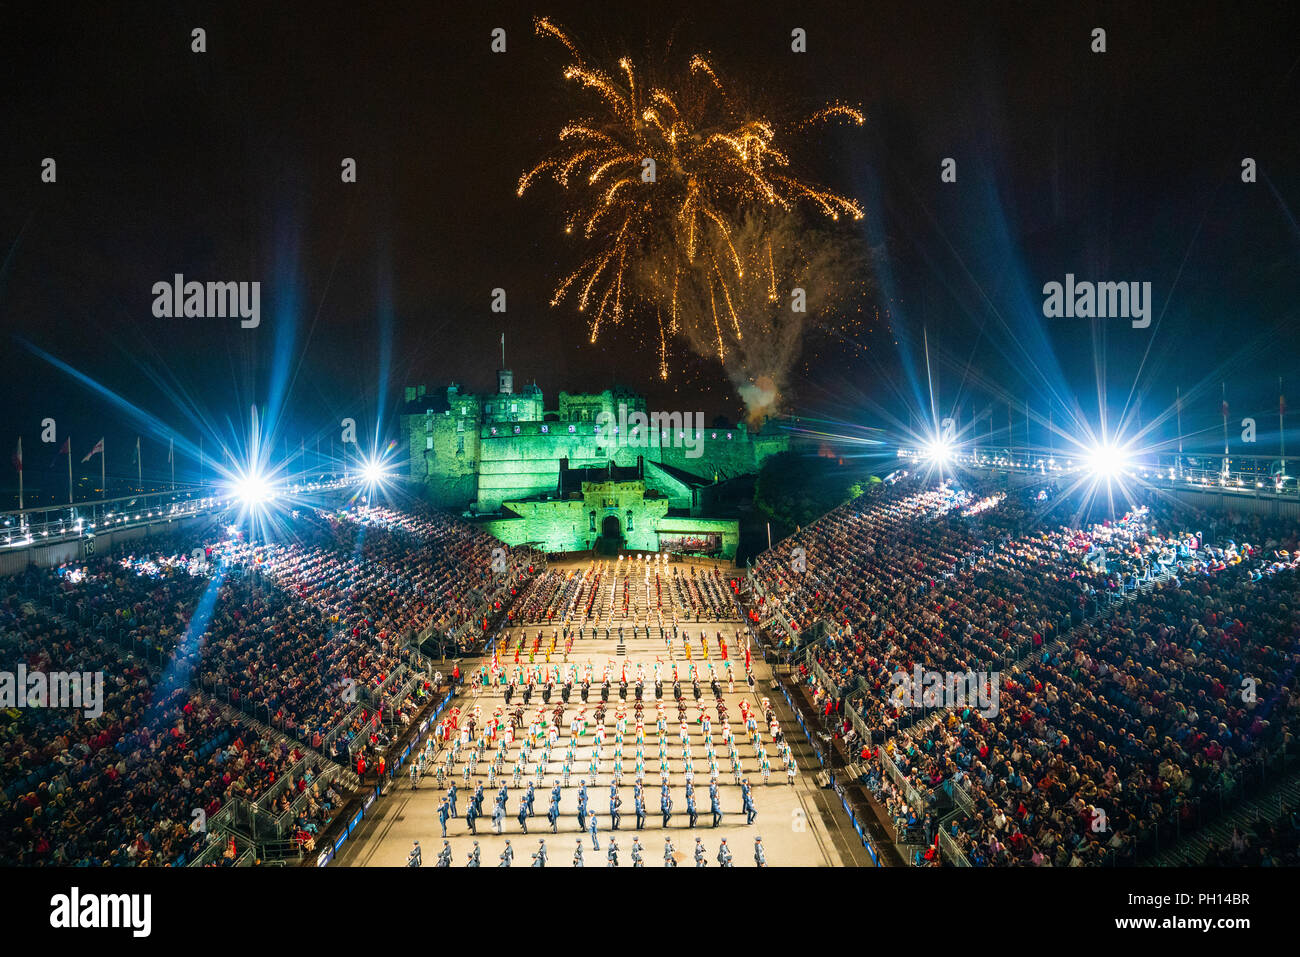 The 2018 Royal Edinburgh International Military Tattoo on esplanade of Edinburgh Castle, Scotland, UK. The Massed Pipes and Drums at the Finale Stock Photo